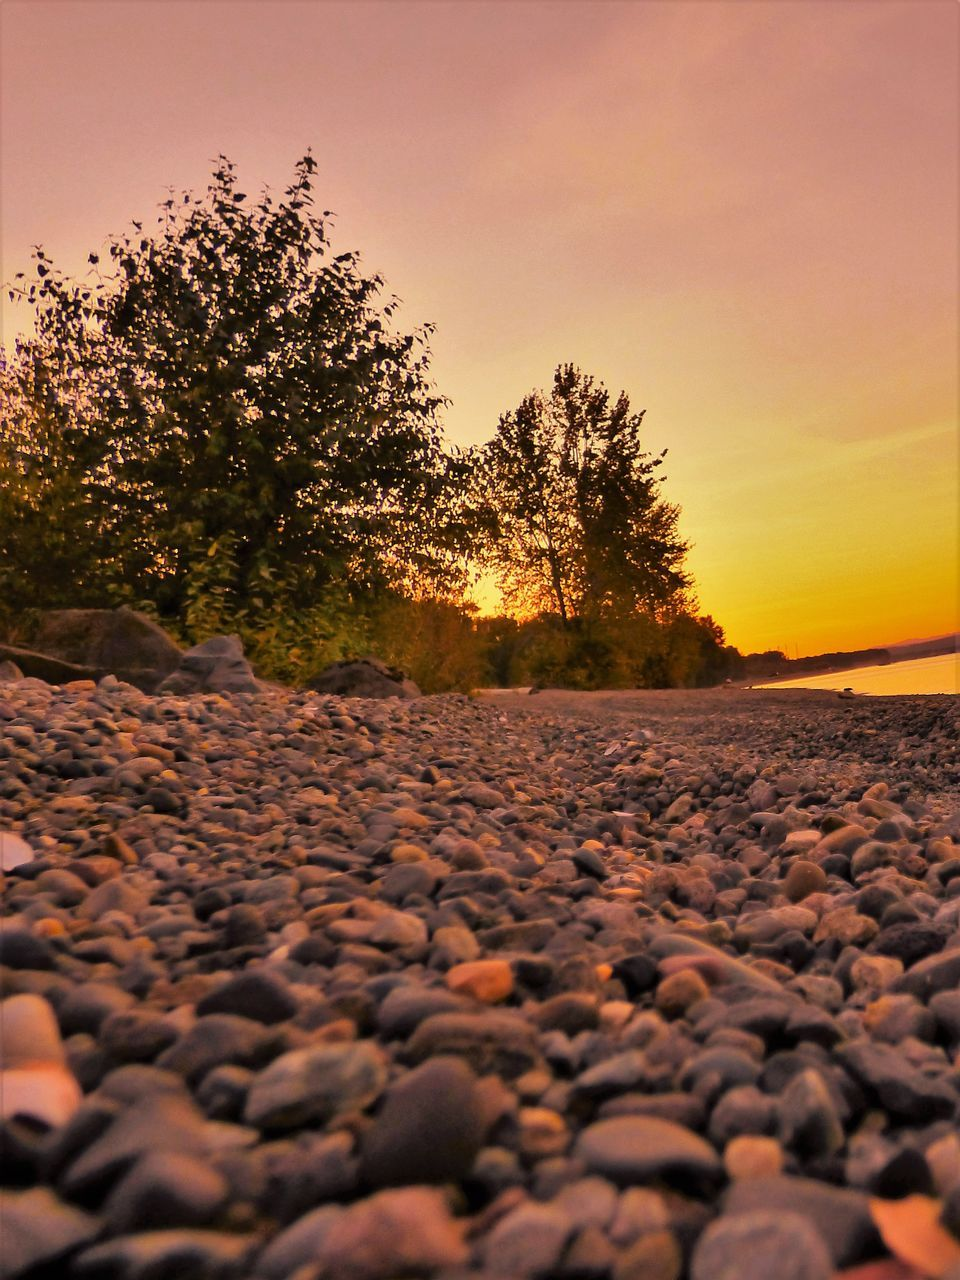 sunset, nature, tree, surface level, beauty in nature, outdoors, tranquil scene, pebble, scenics, tranquility, no people, sky, landscape, pebble beach, clear sky, day